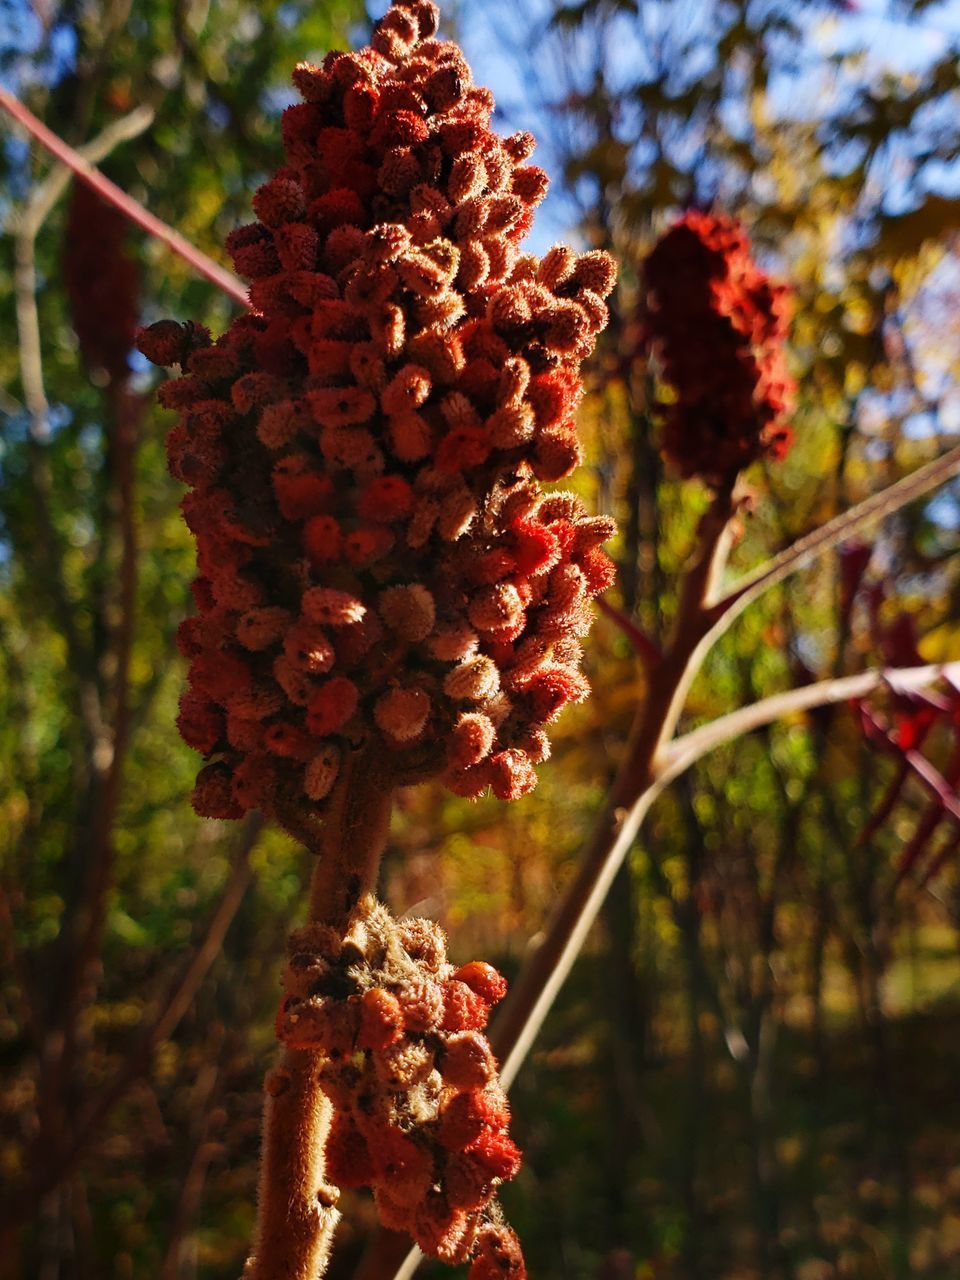 plant, focus on foreground, nature, close-up, growth, day, food, red, no people, beauty in nature, food and drink, freshness, fruit, healthy eating, tree, flower, outdoors, tranquility, bunch, flowering plant